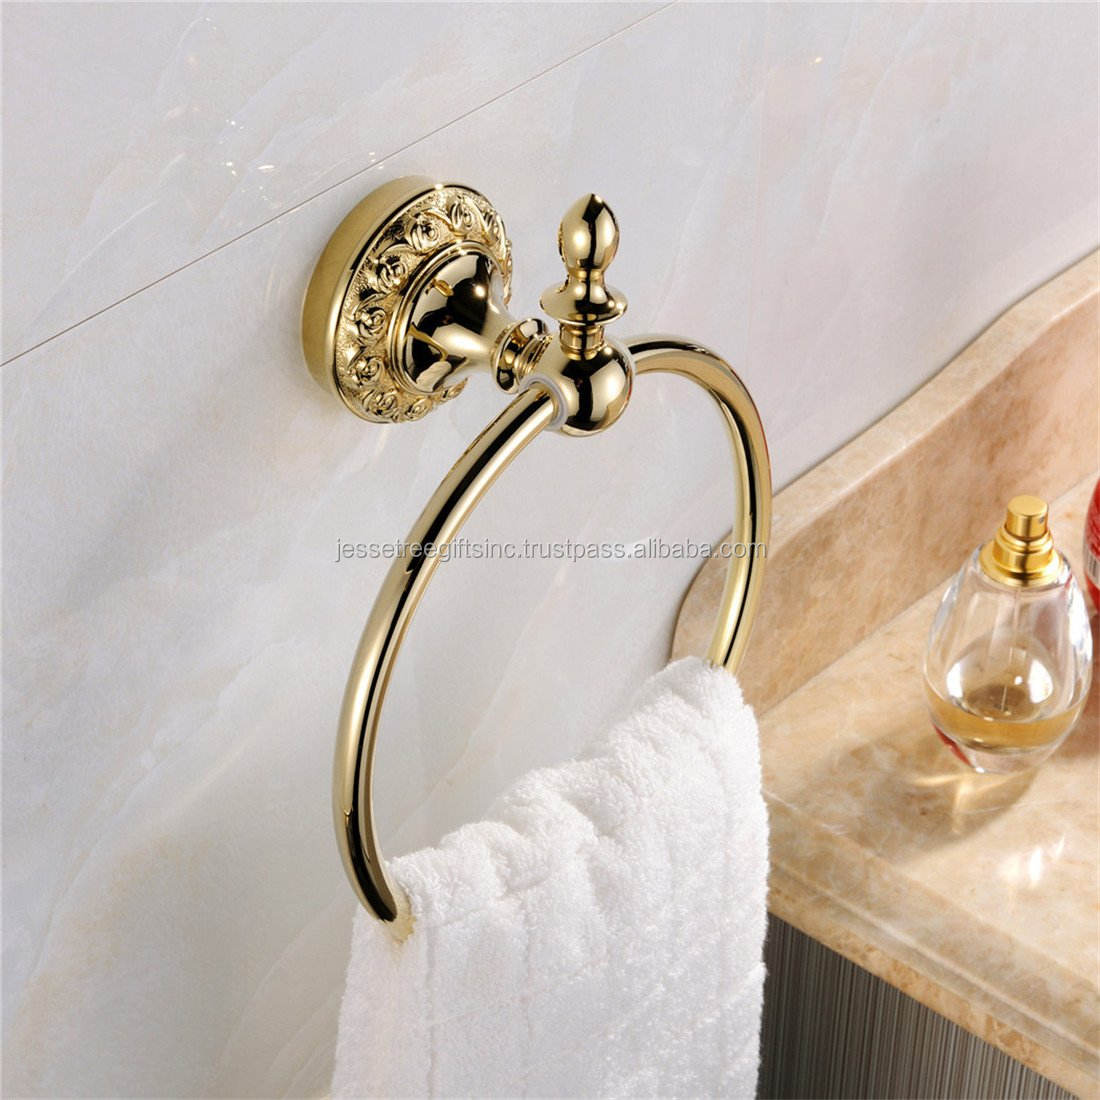 Home Towel Ring European Style Durable Gold Finishing - Brass Bath Towel Holder Bathroom Accessories Anti Rust Wall Mount